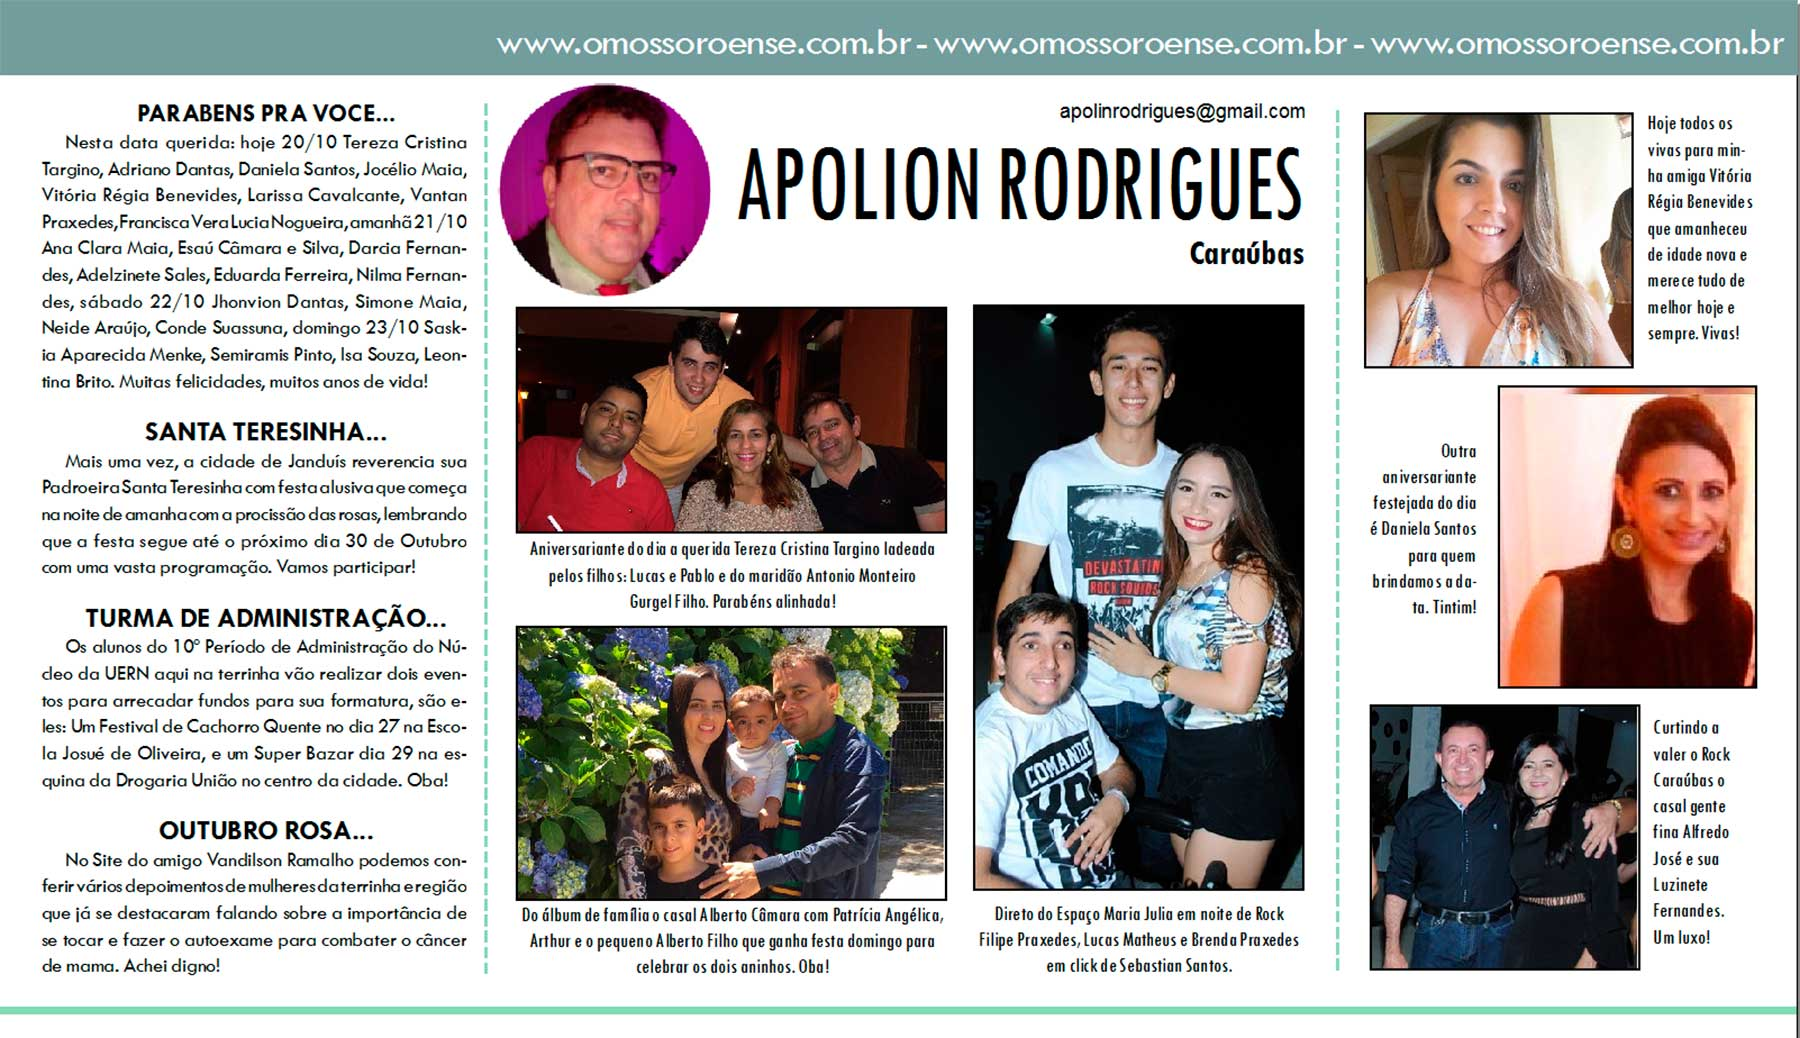 apolion-rodrigues-20-10-2016